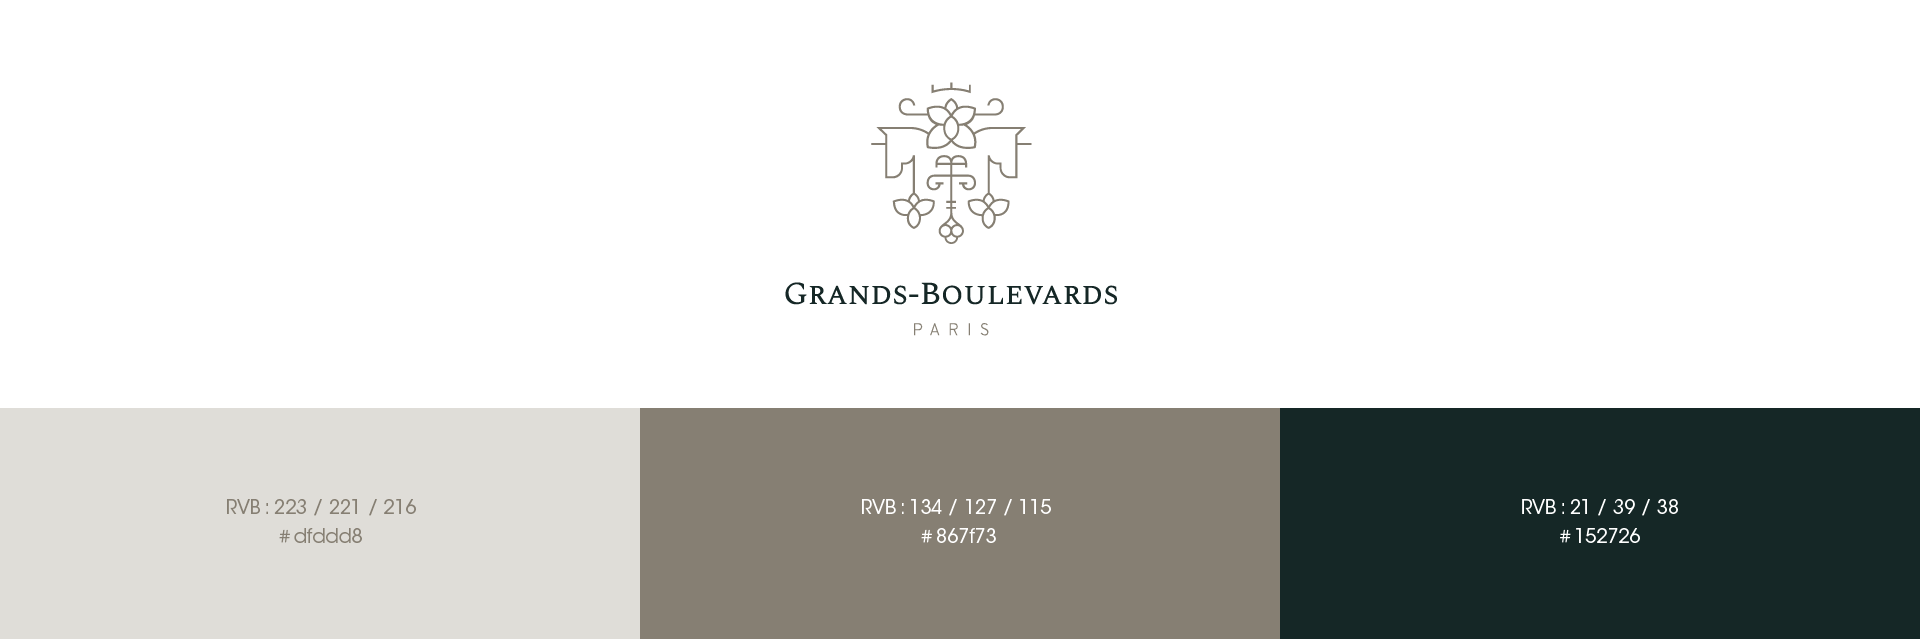 GrandsBoulevards_couleurs Grands Boulevards